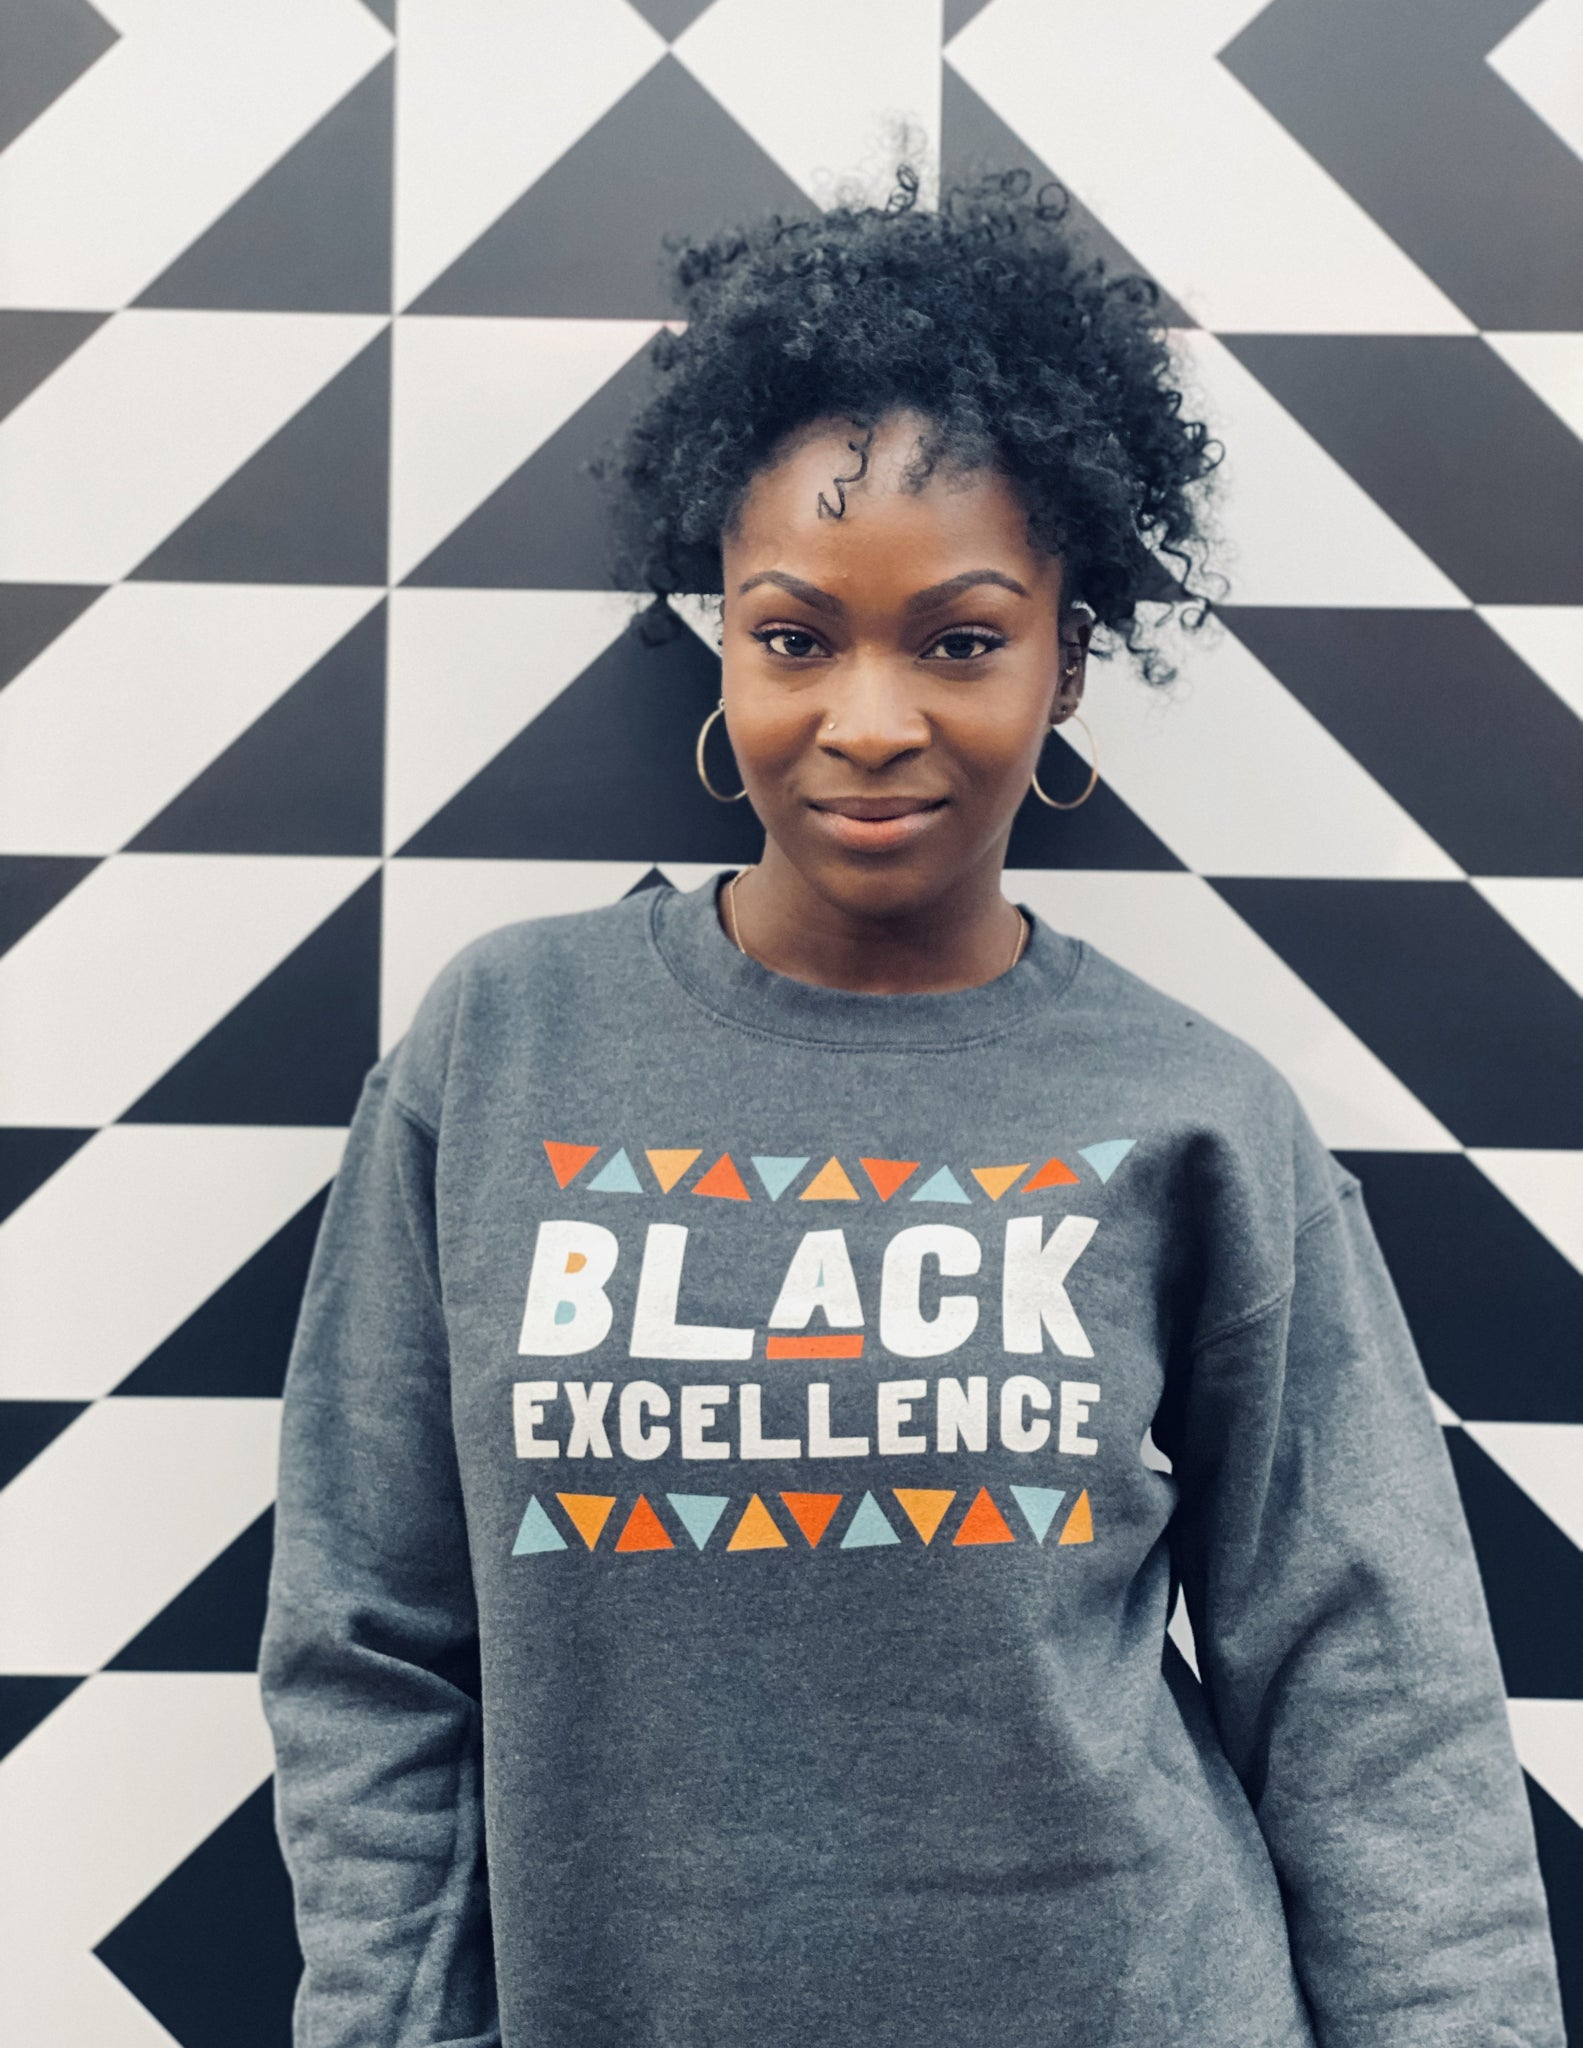 Black Excellence Sweatshirt in Dark Heather